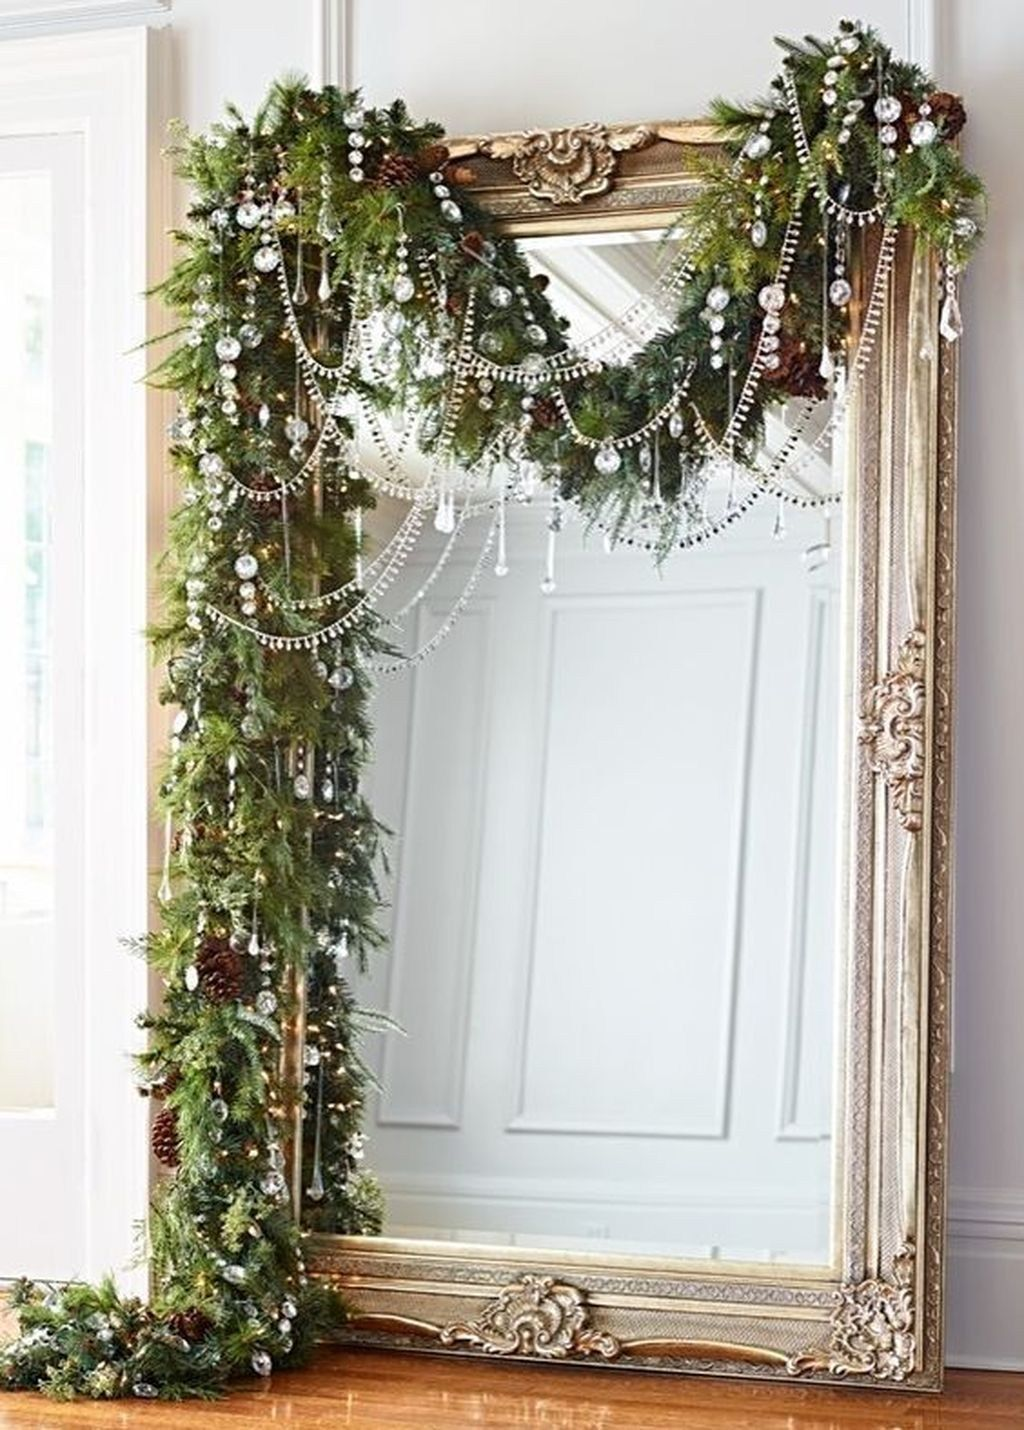 50 Magnificient Christmas Decoration Ideas #holidaydecor